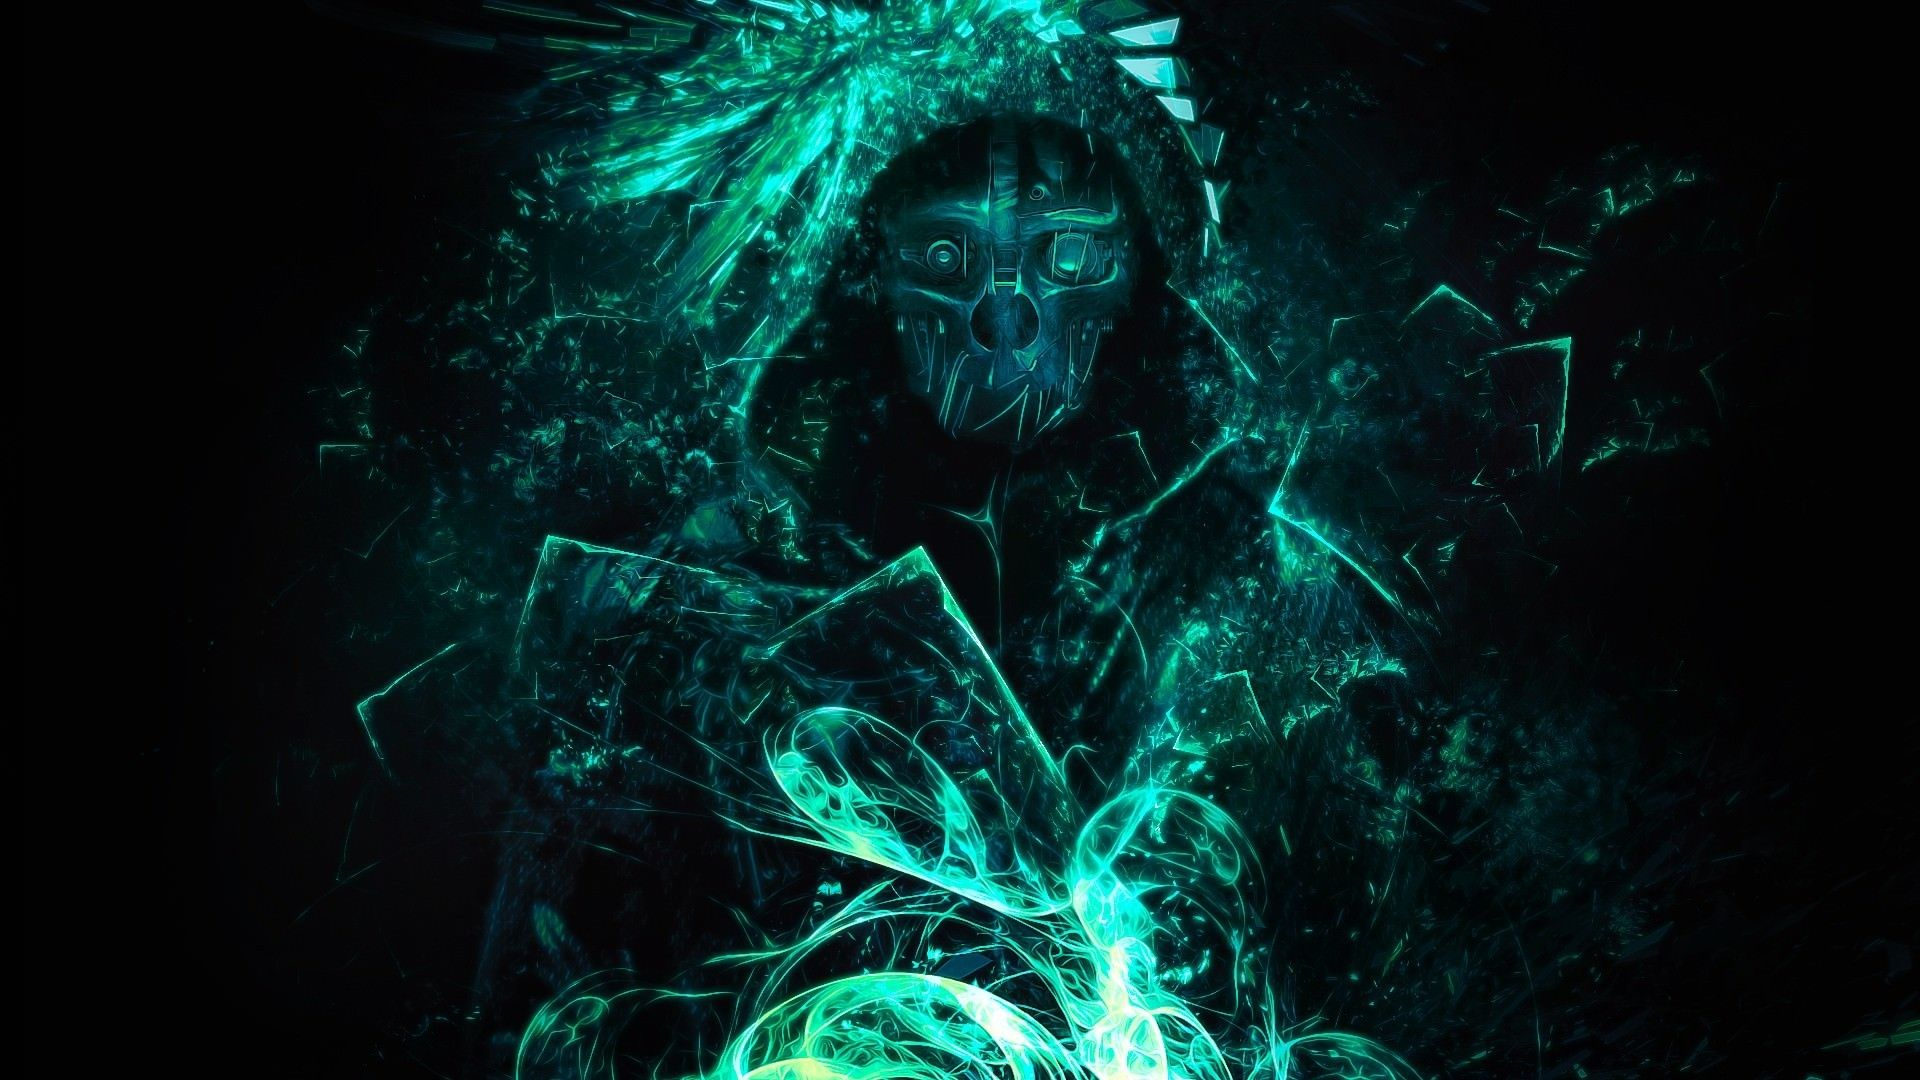 Neon Gaming Wallpaper Posted By Christopher Simpson